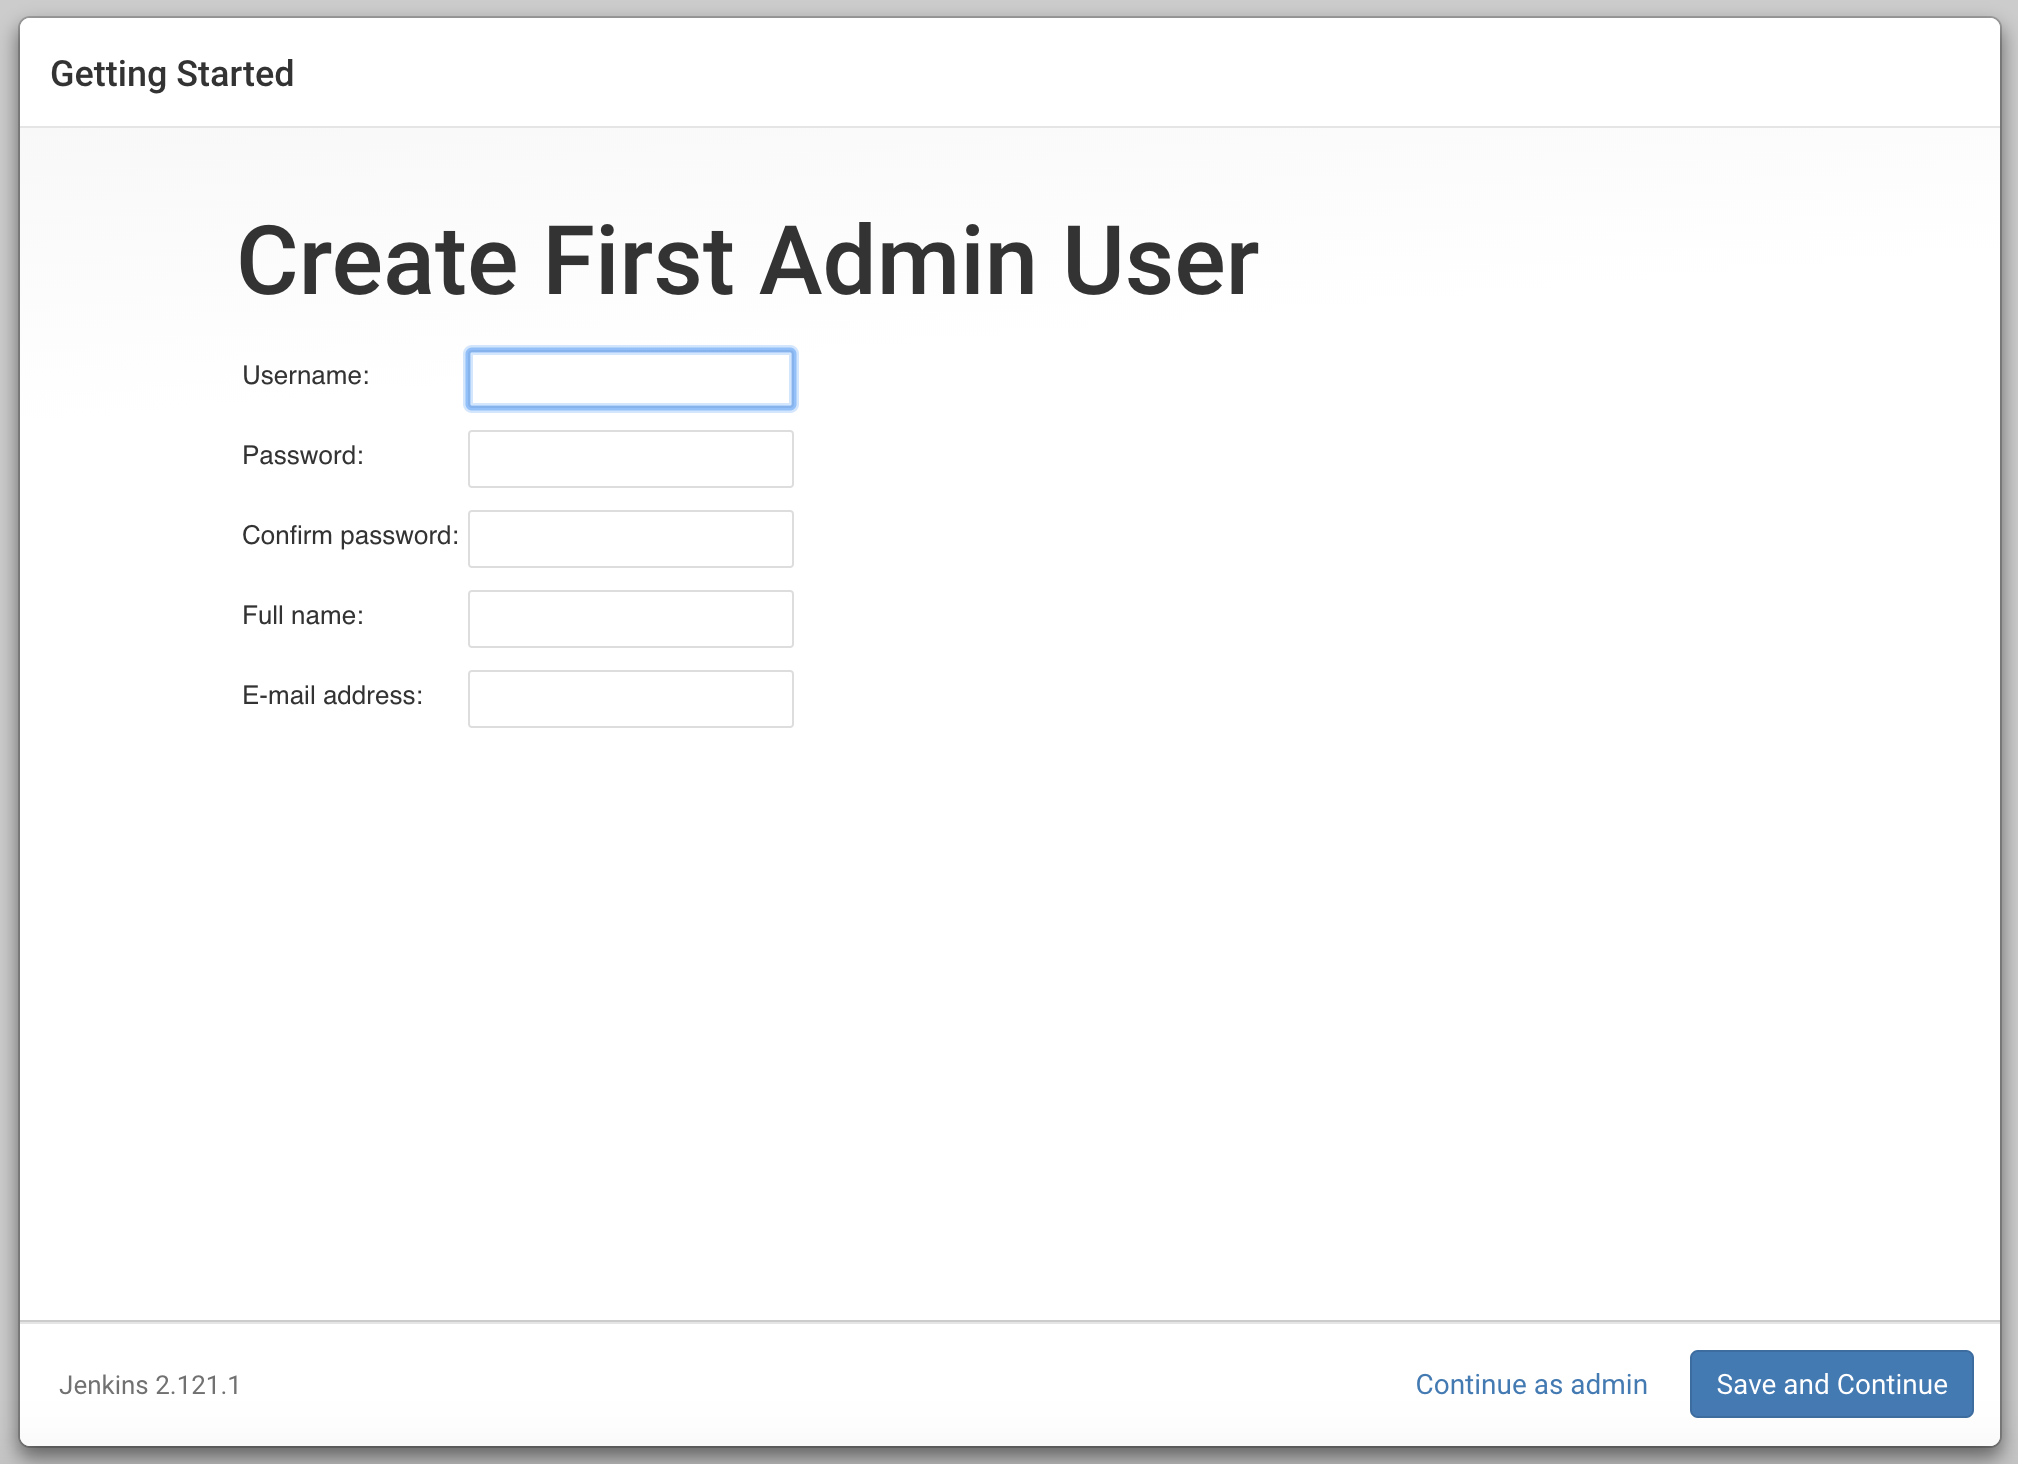 Jenkins Create First Admin User Screen